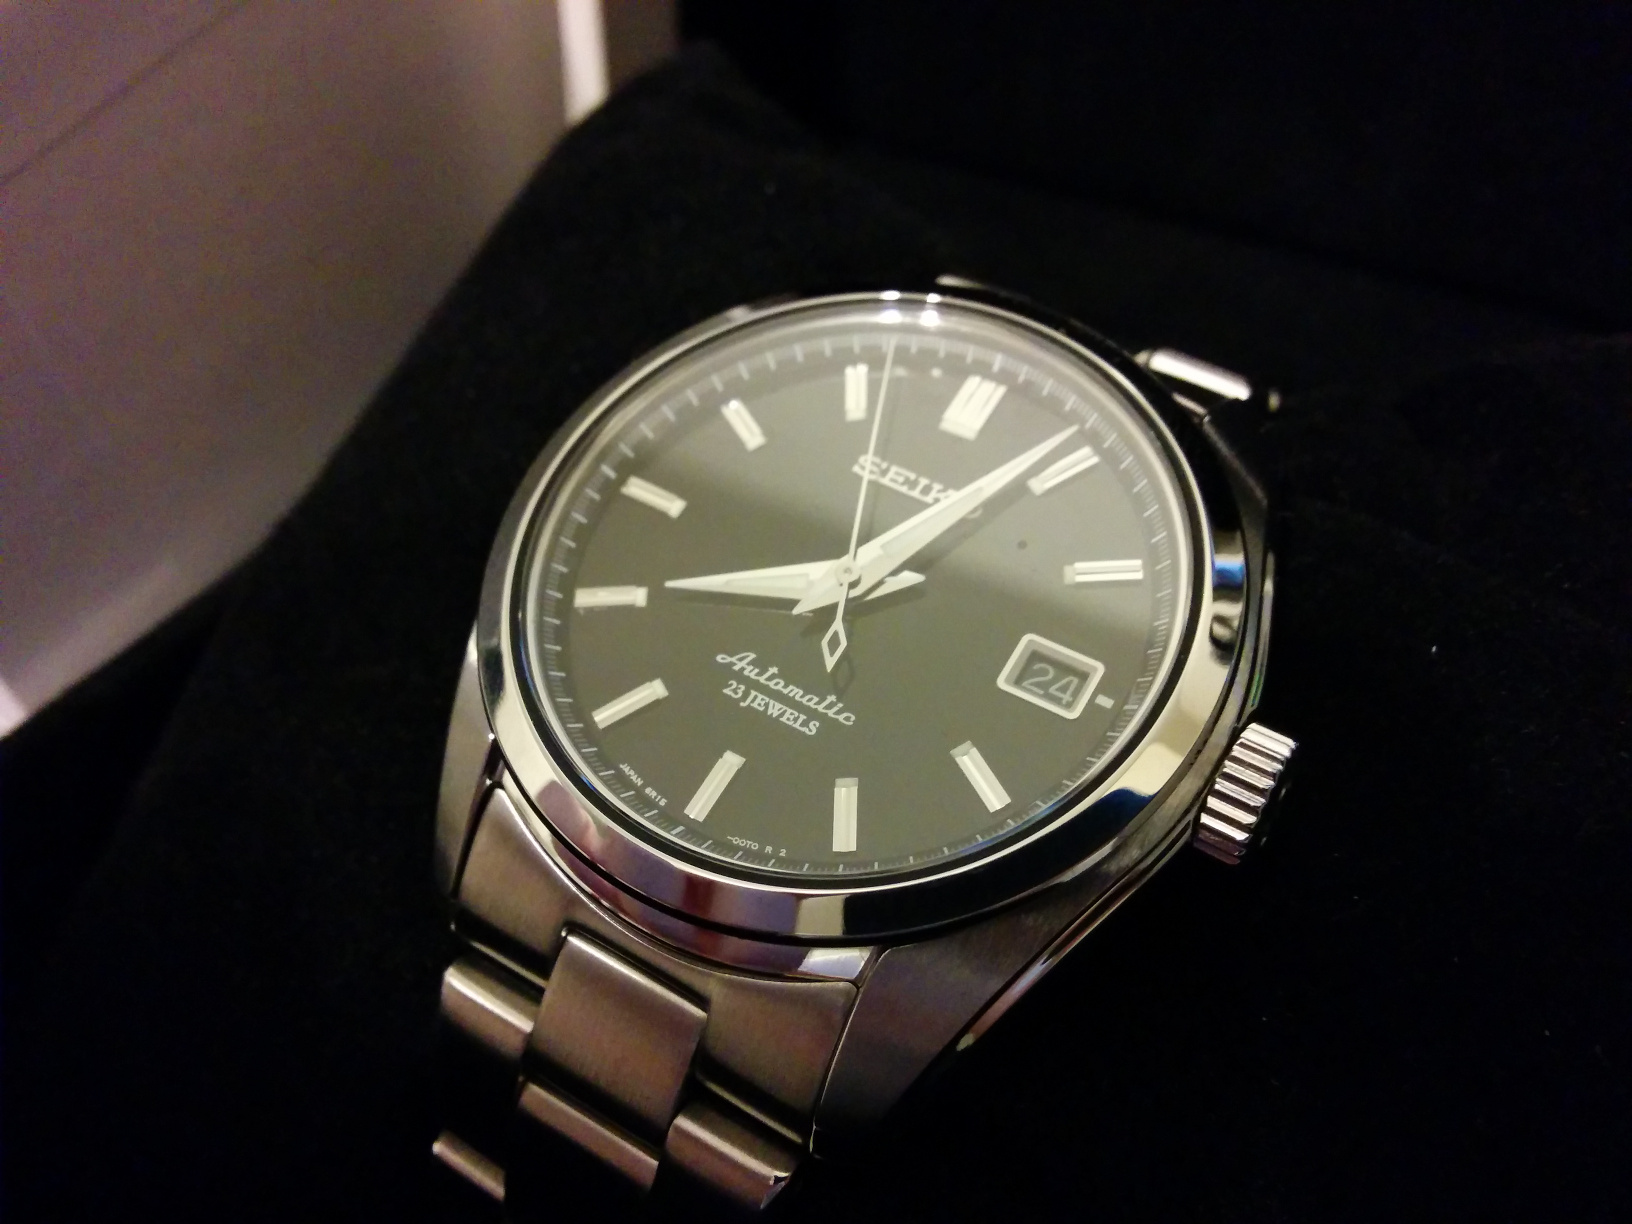 Official Sarb033 Sarb035 Seiko Spirit Thread